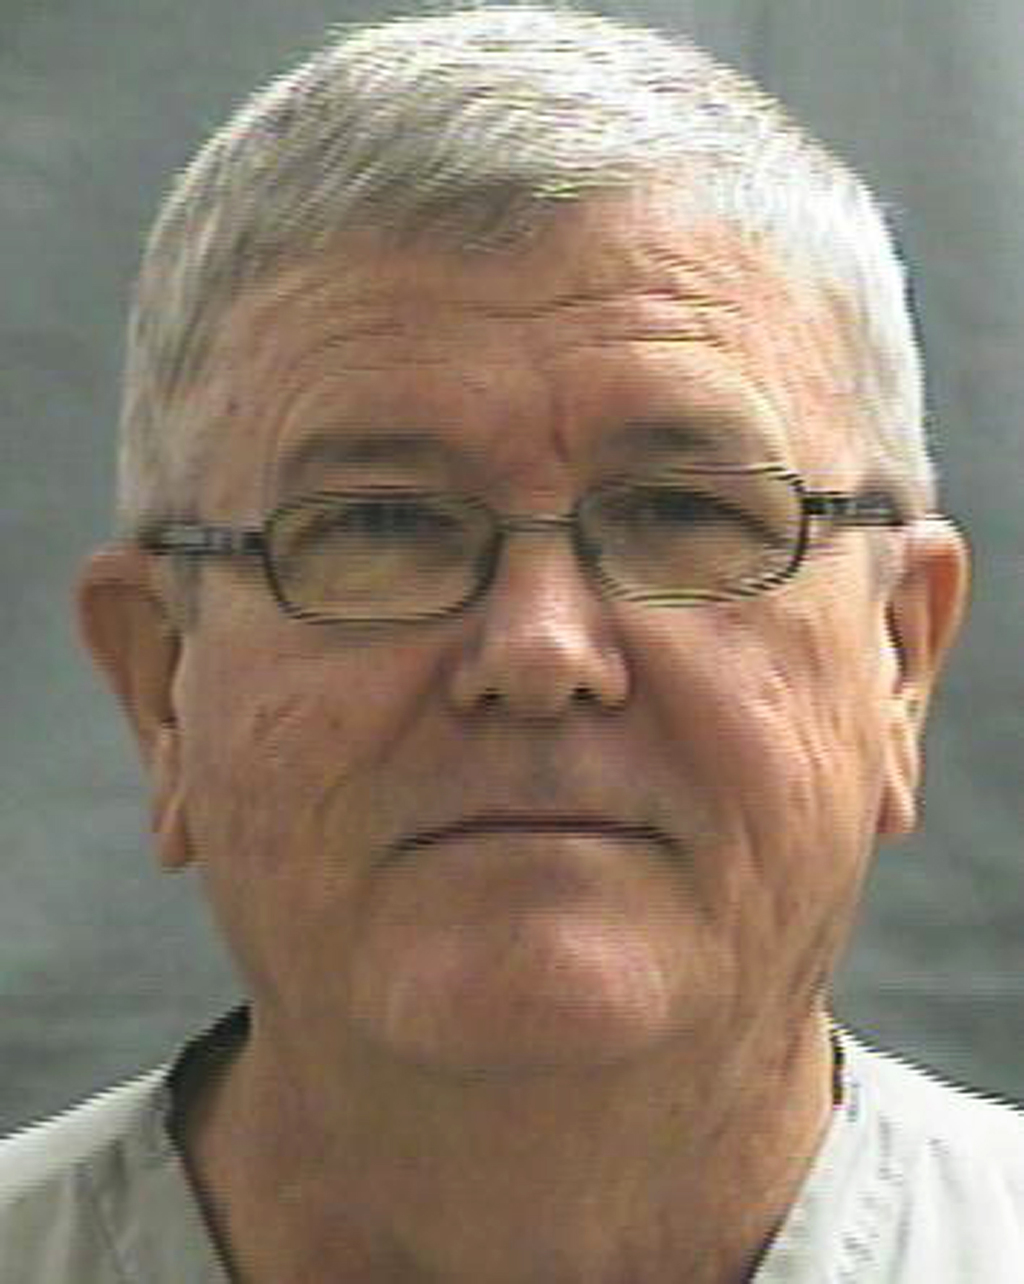 This July 31, 2014 photo provided by the Oklahoma Department of Corrections shows Harold D. English. English, a convicted sex offender who molested hi...